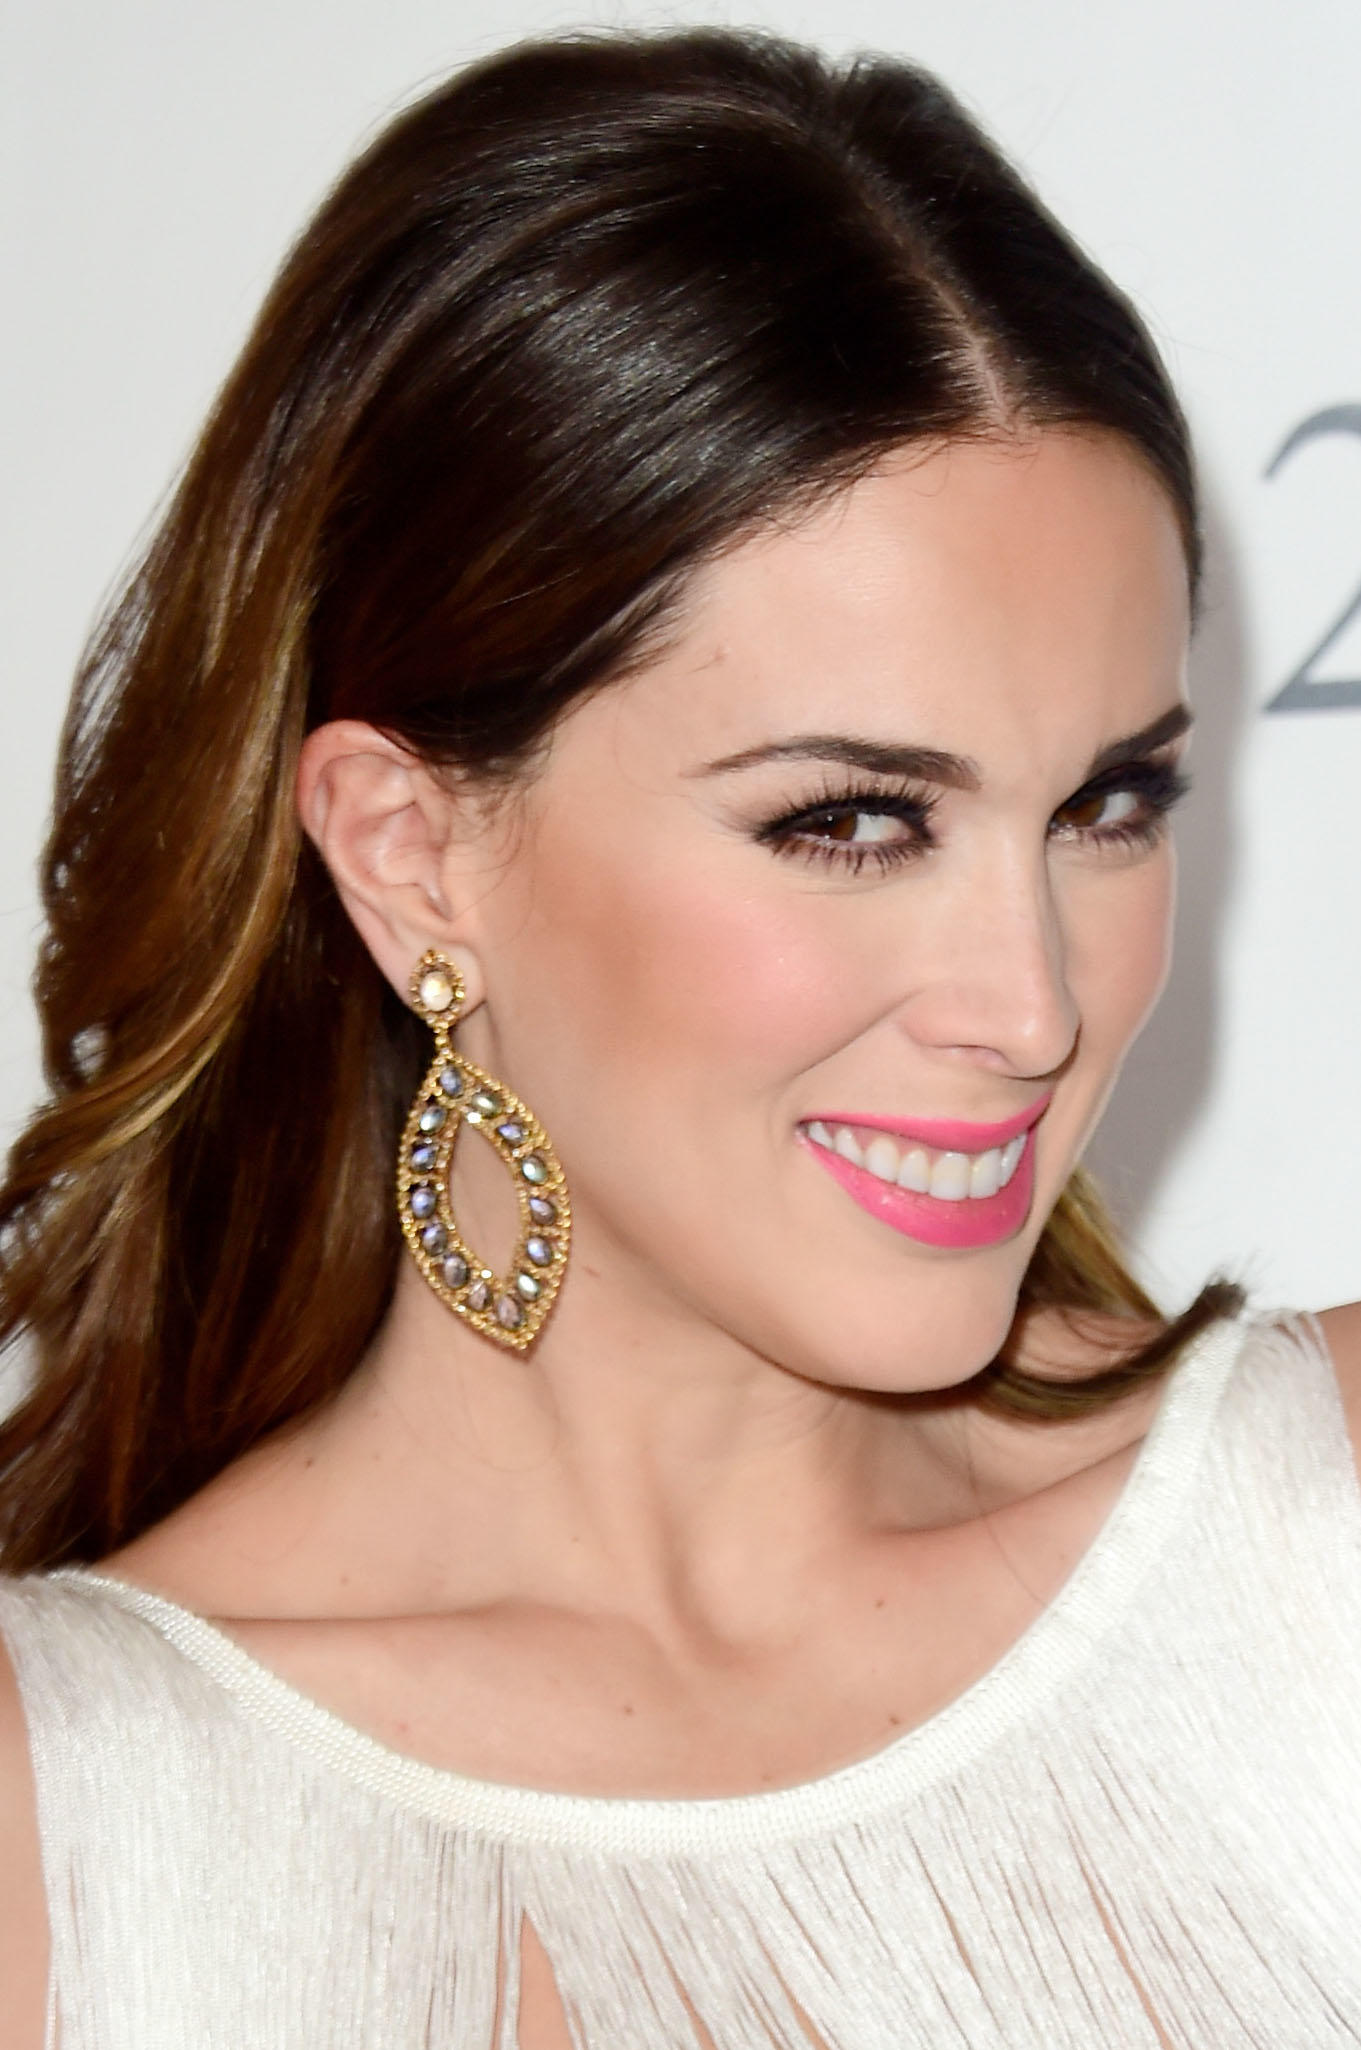 jacqueline bracamontes pictures and photos fandango